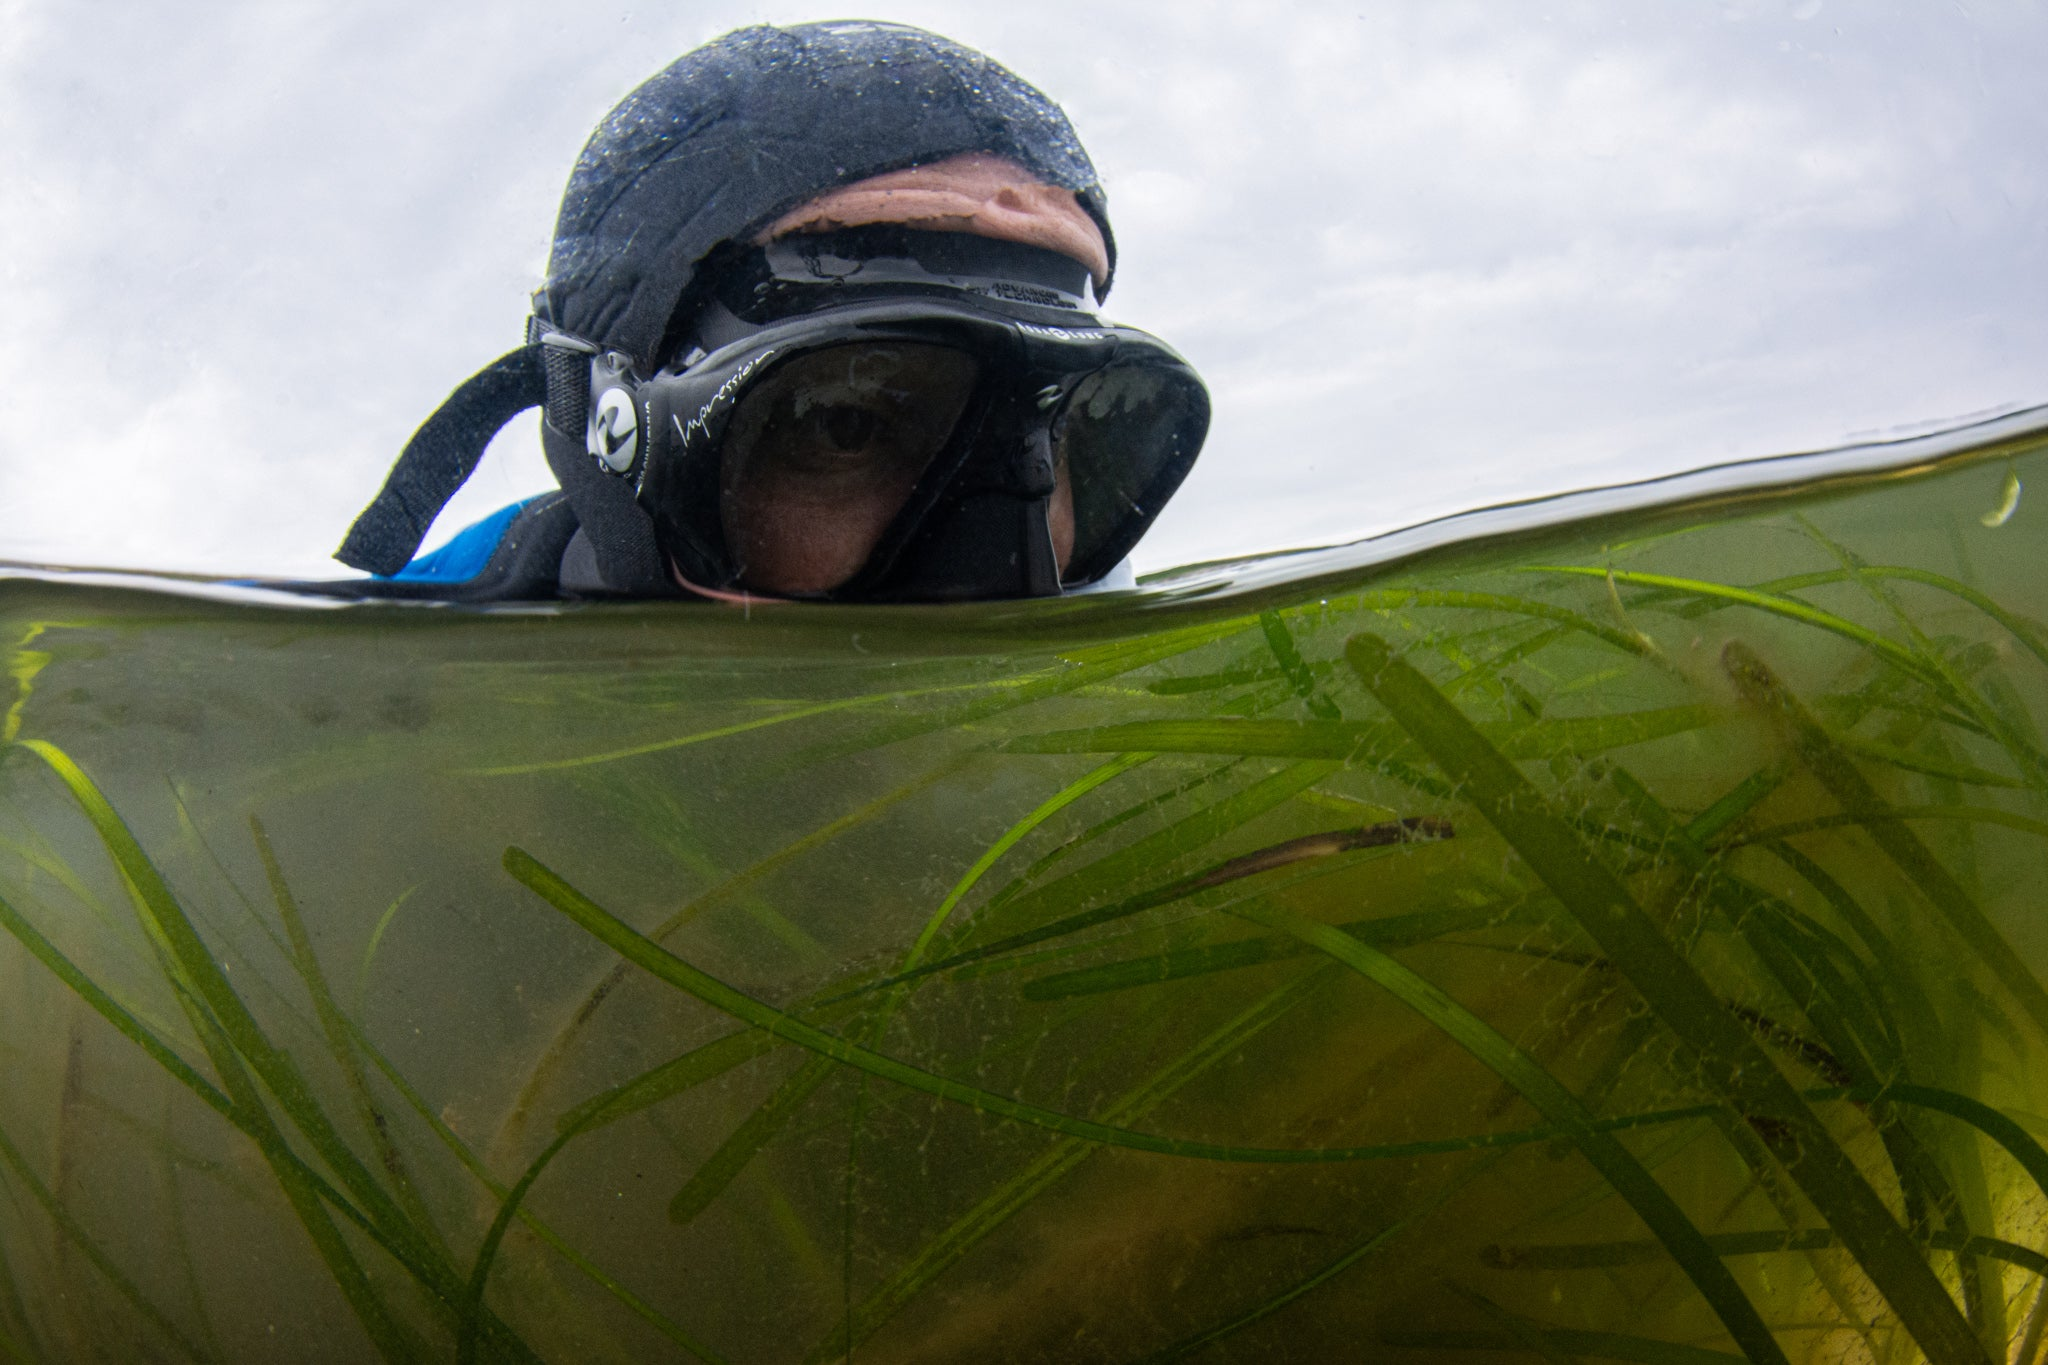 Diver with goggles above water and bottom half of image showing underwater seagrass